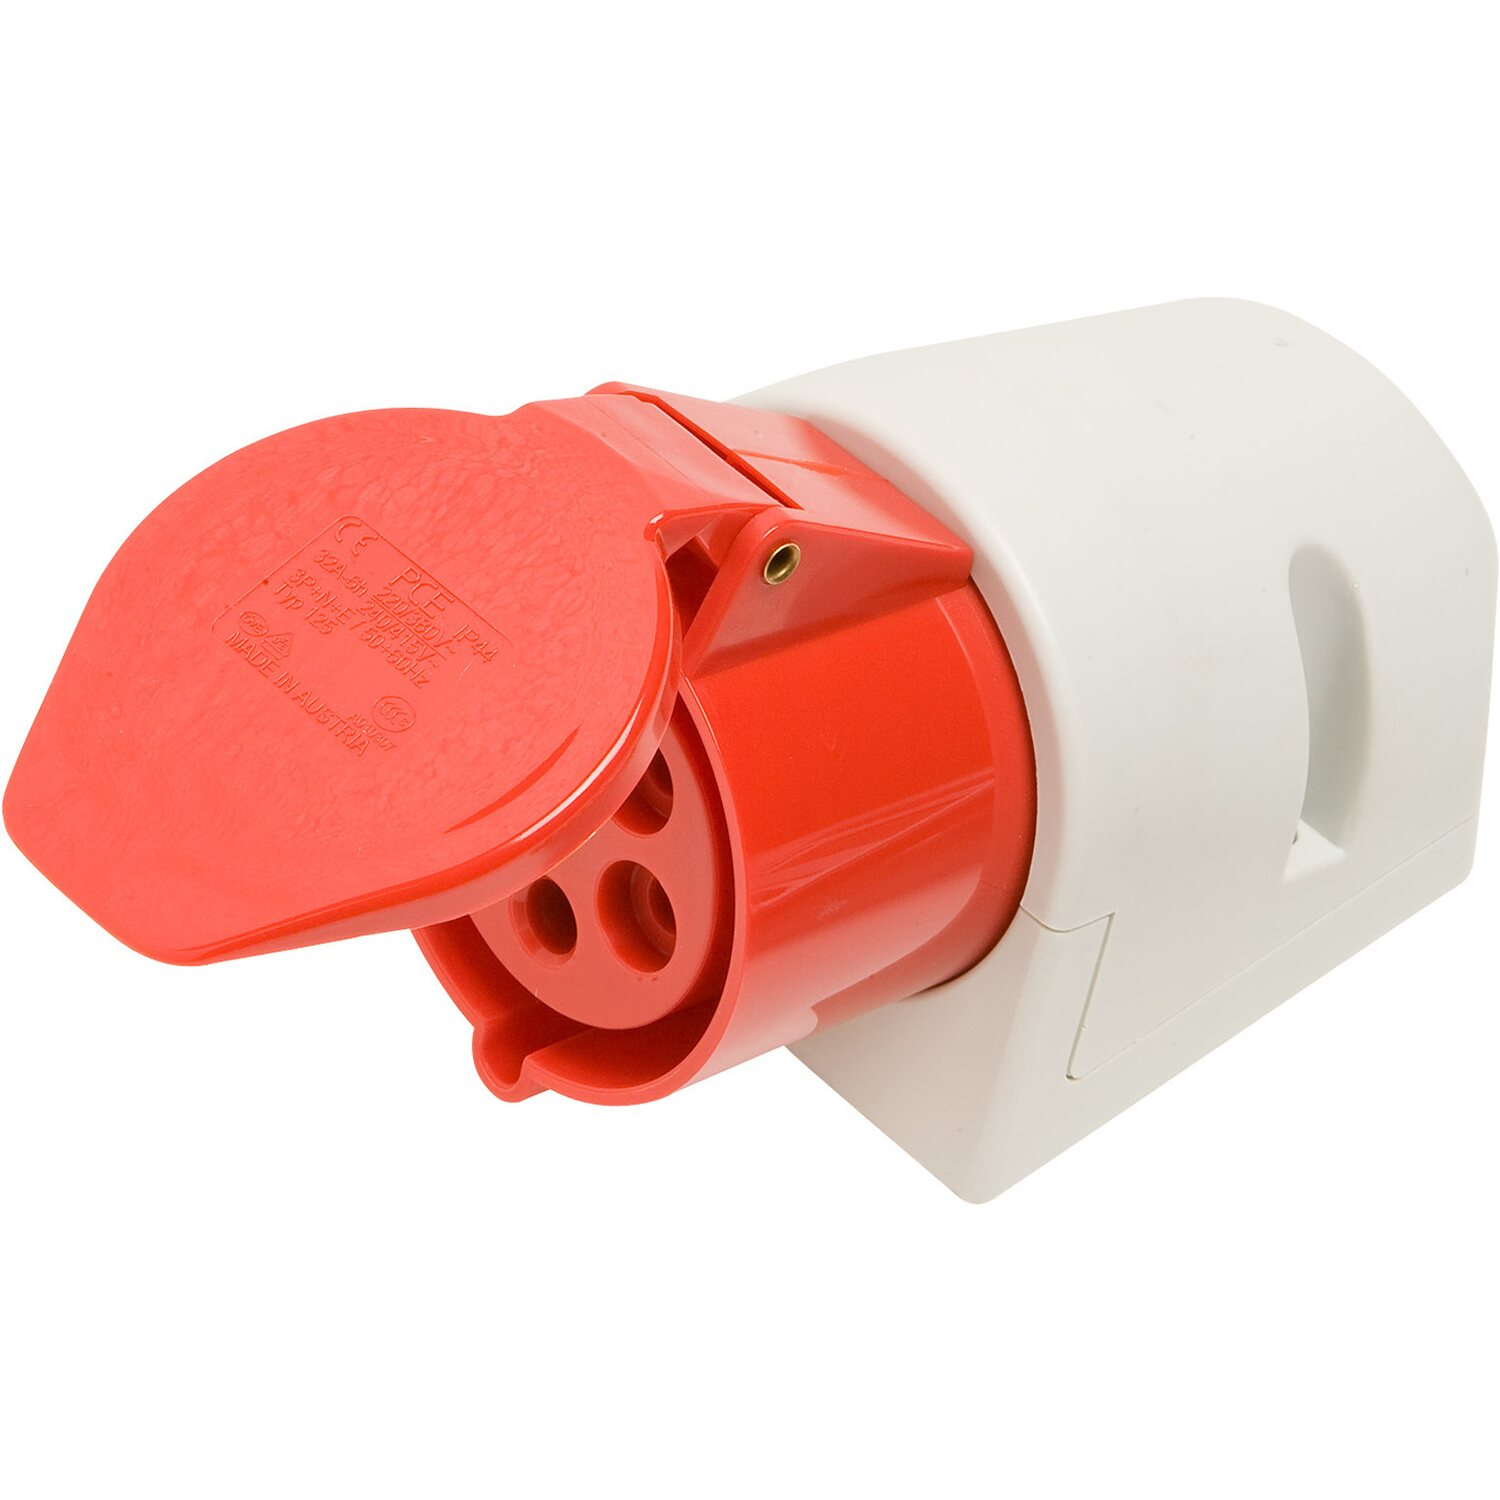 CEE Wandsteckdose 5-polig IP44 32 A Rot